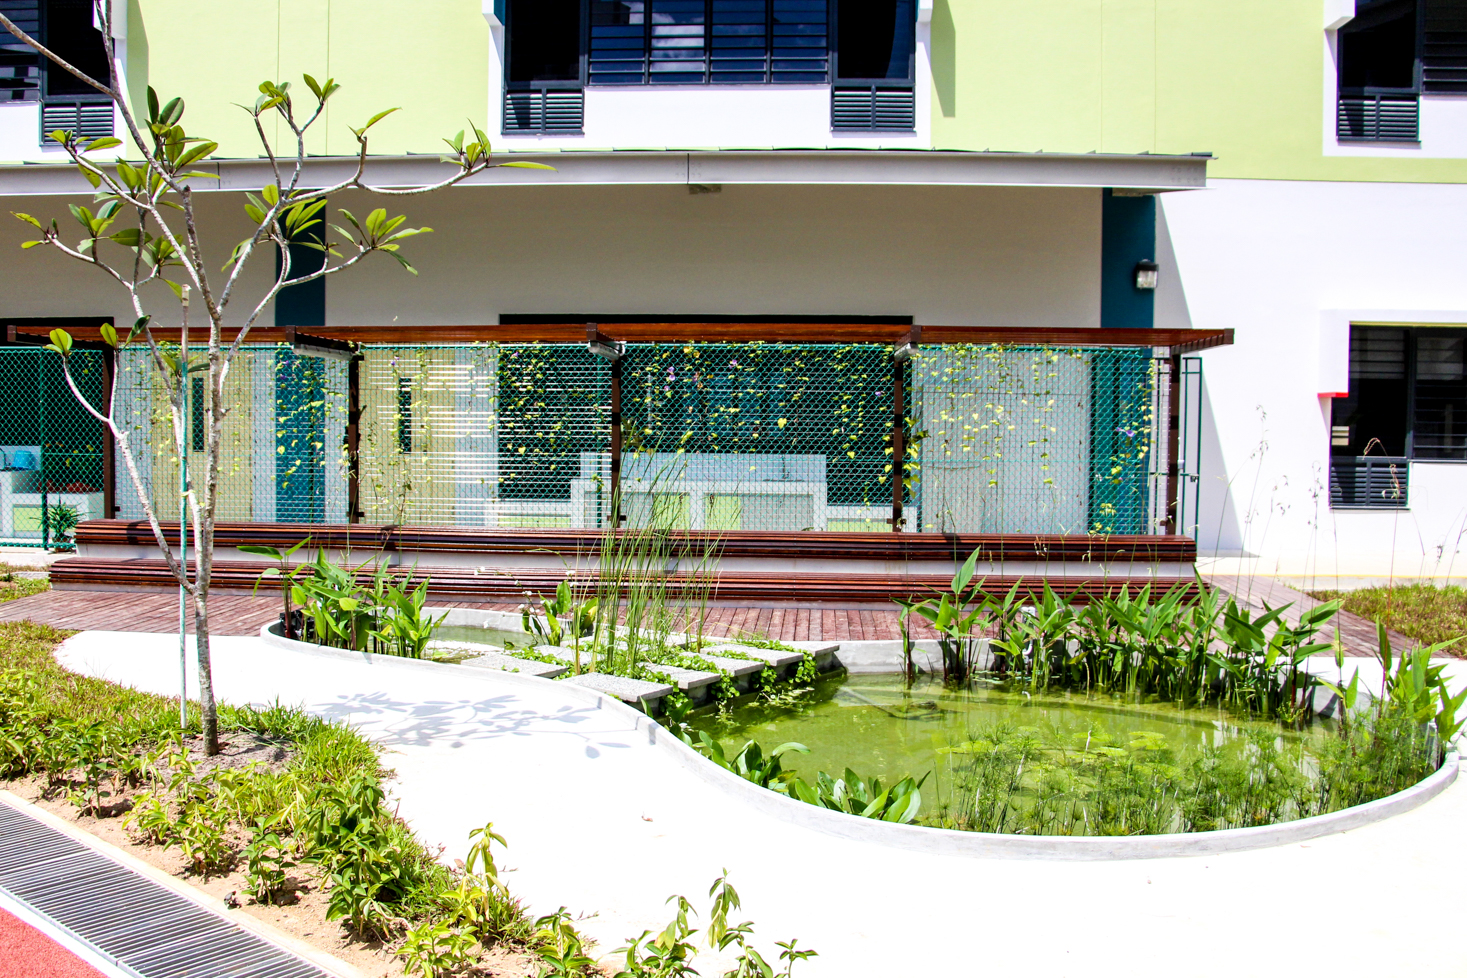 Image of Science garden